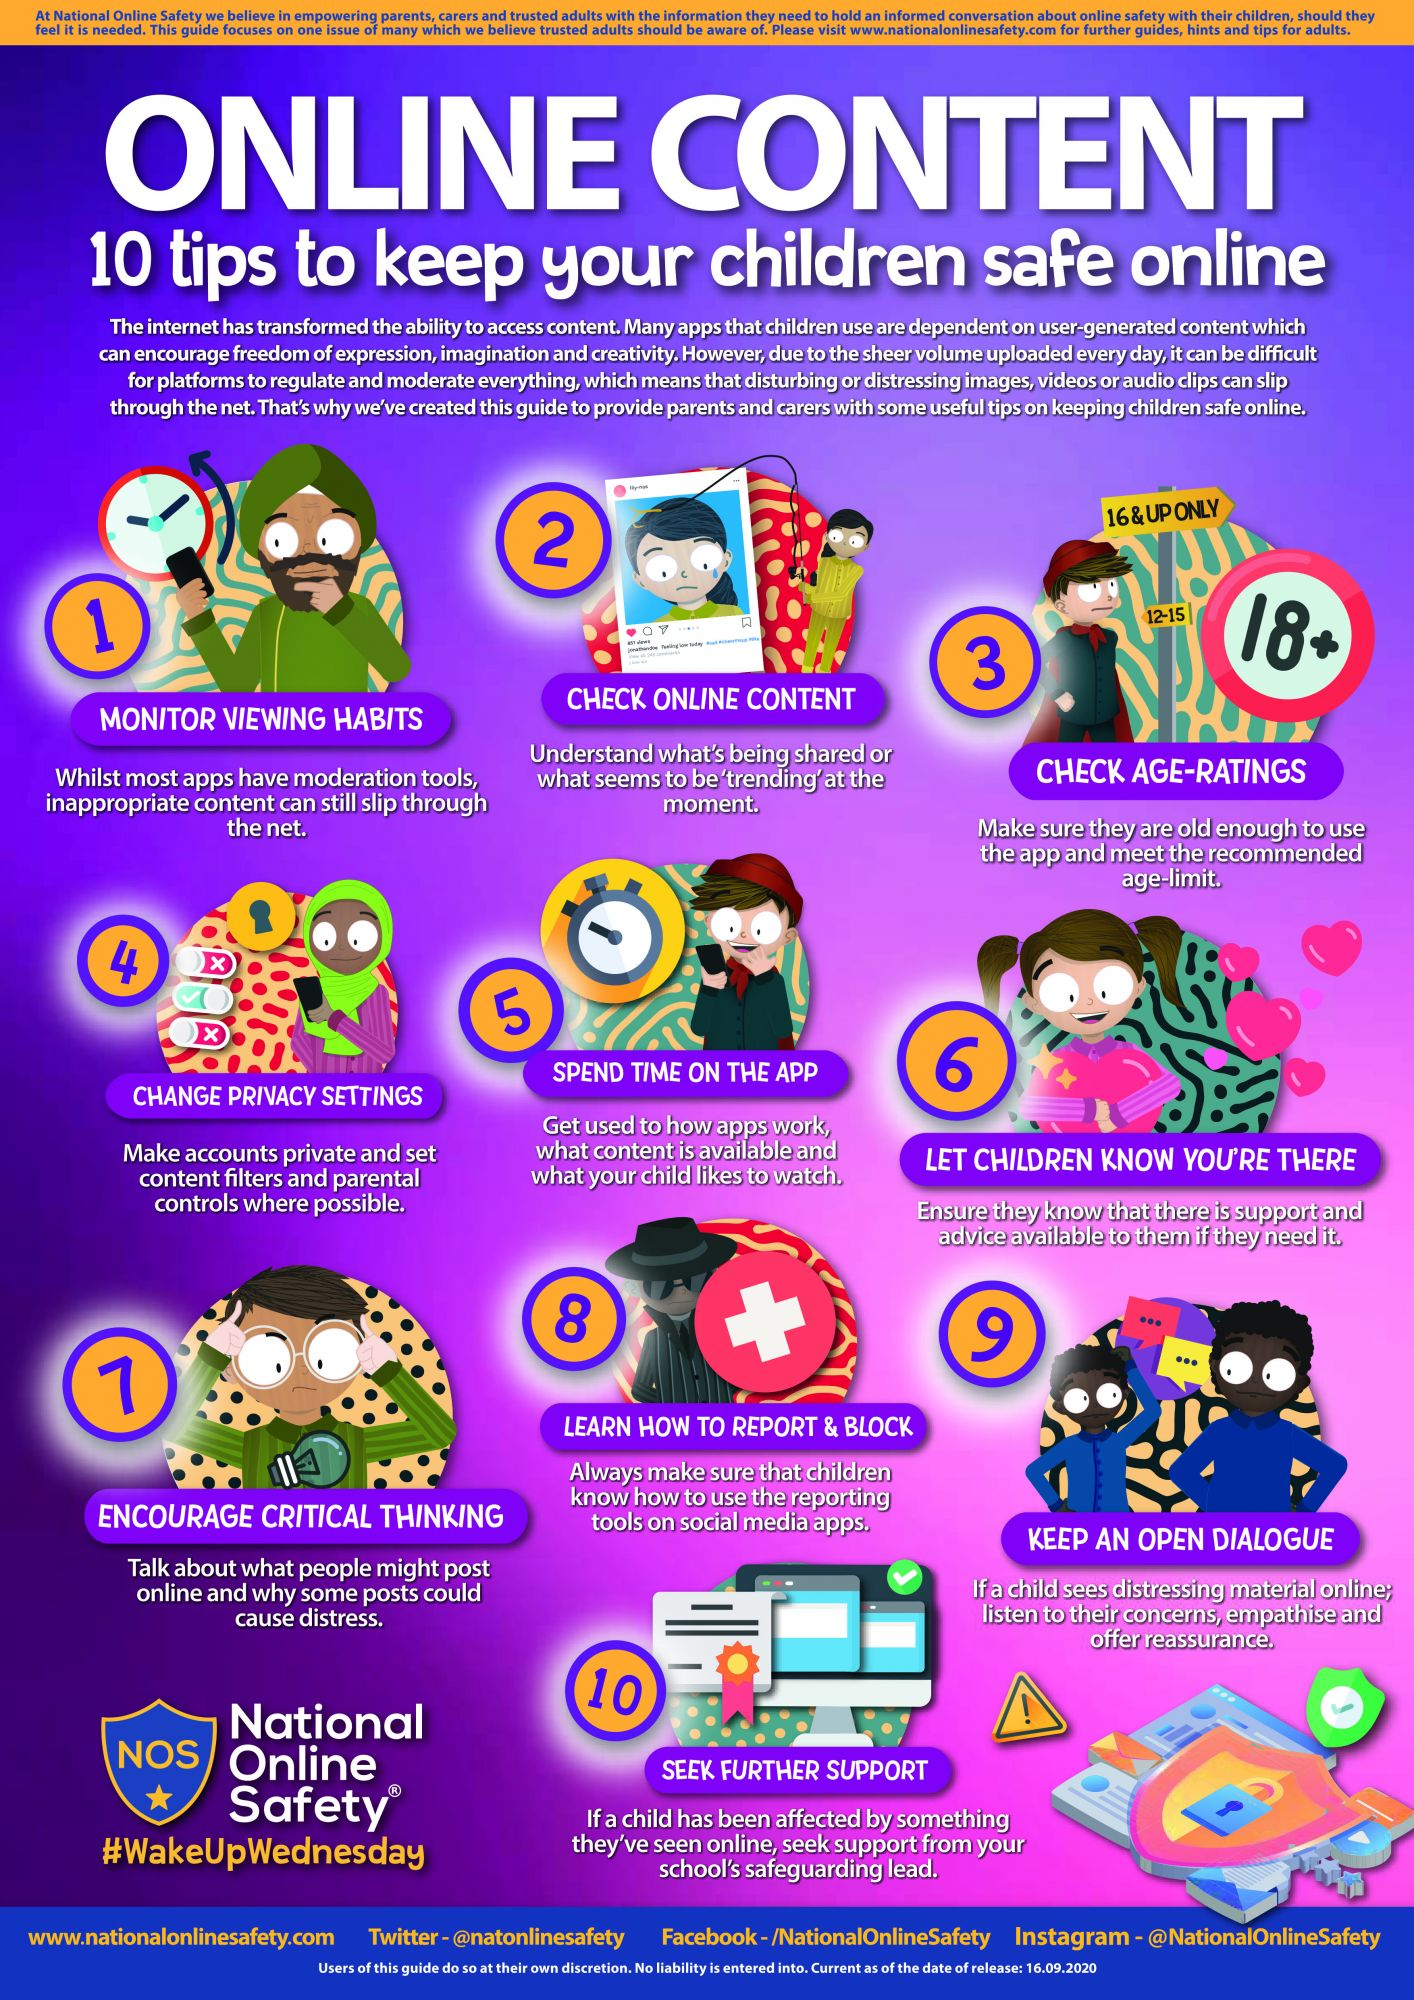 Online_Safety_10_Tips_for_Keeping_Your_Child_Safe_Online.jpg